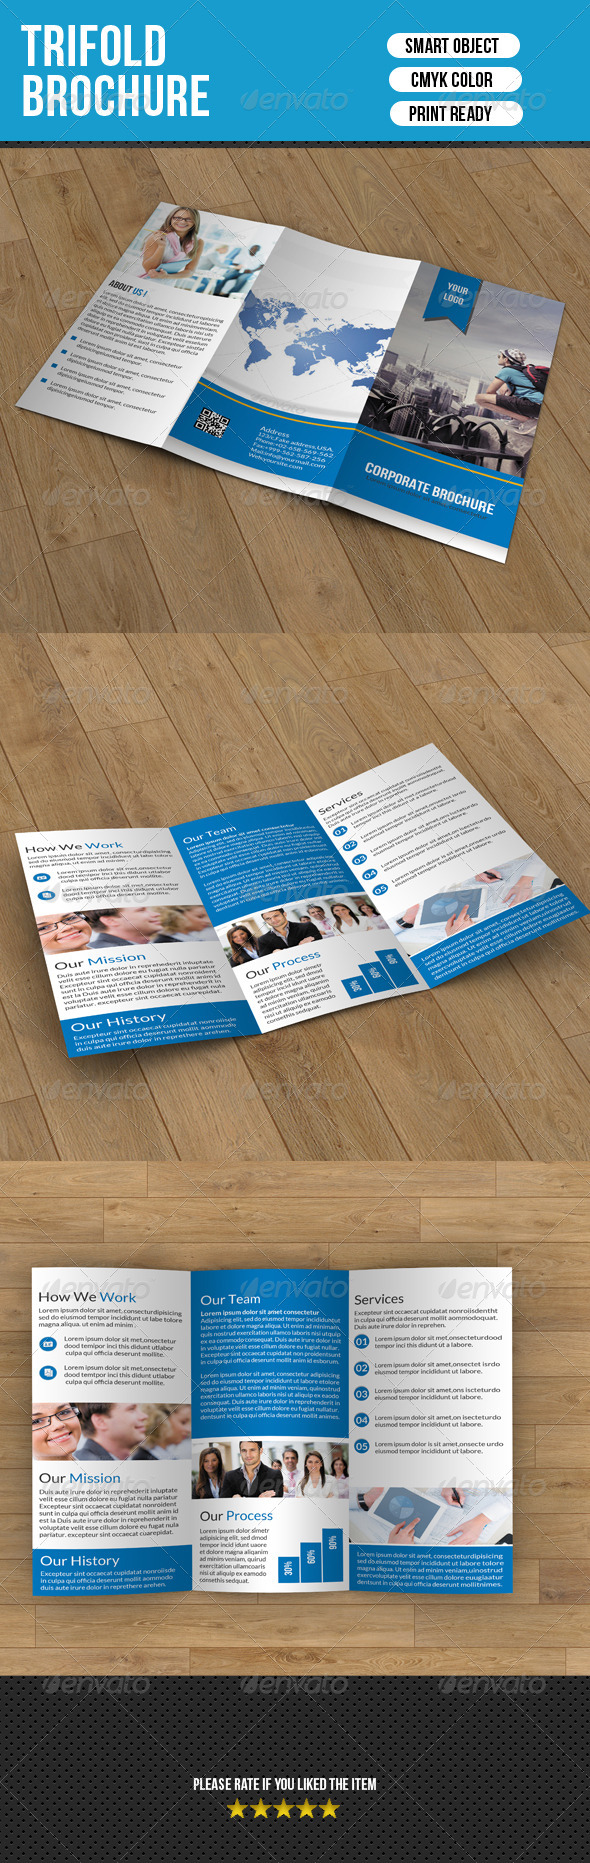 Trifold Brochure- Business - Corporate Brochures